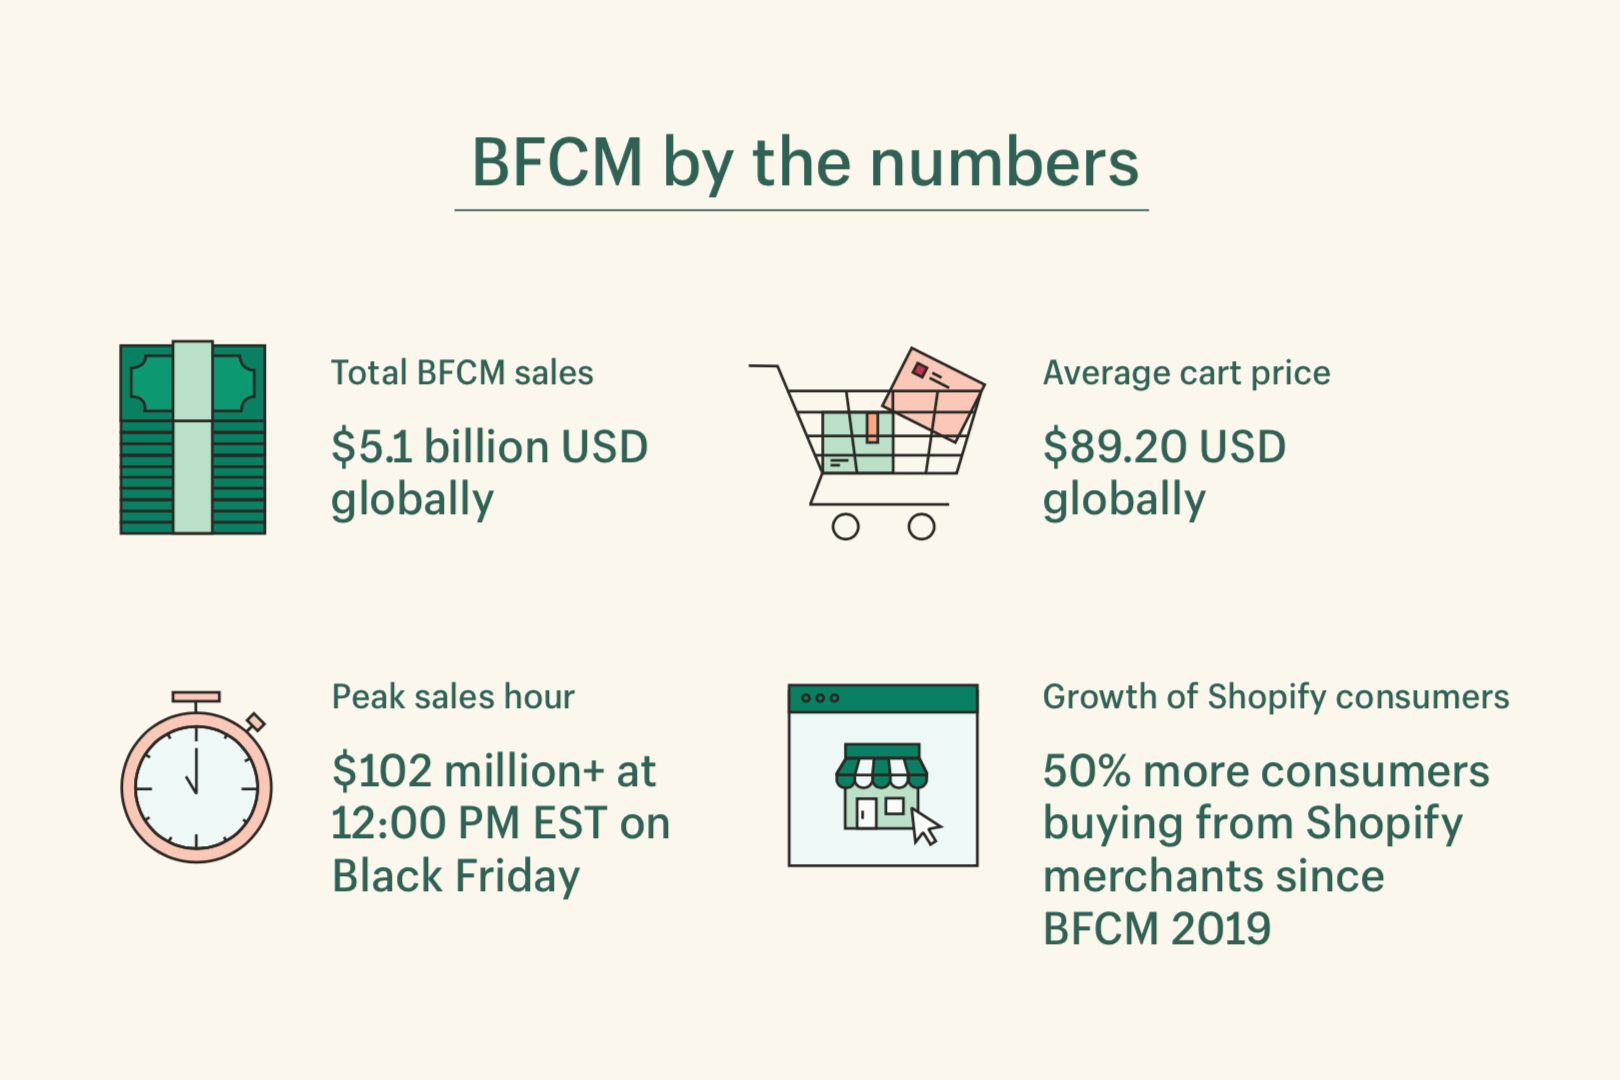 BFCM by the numbers globally 2020: Total Sales: $5.1B USD, Average cart prices $89.20 USD, Peak sales hour $102M+ at 12 pm EST, 50% more consumers buying from Shopify Merchant